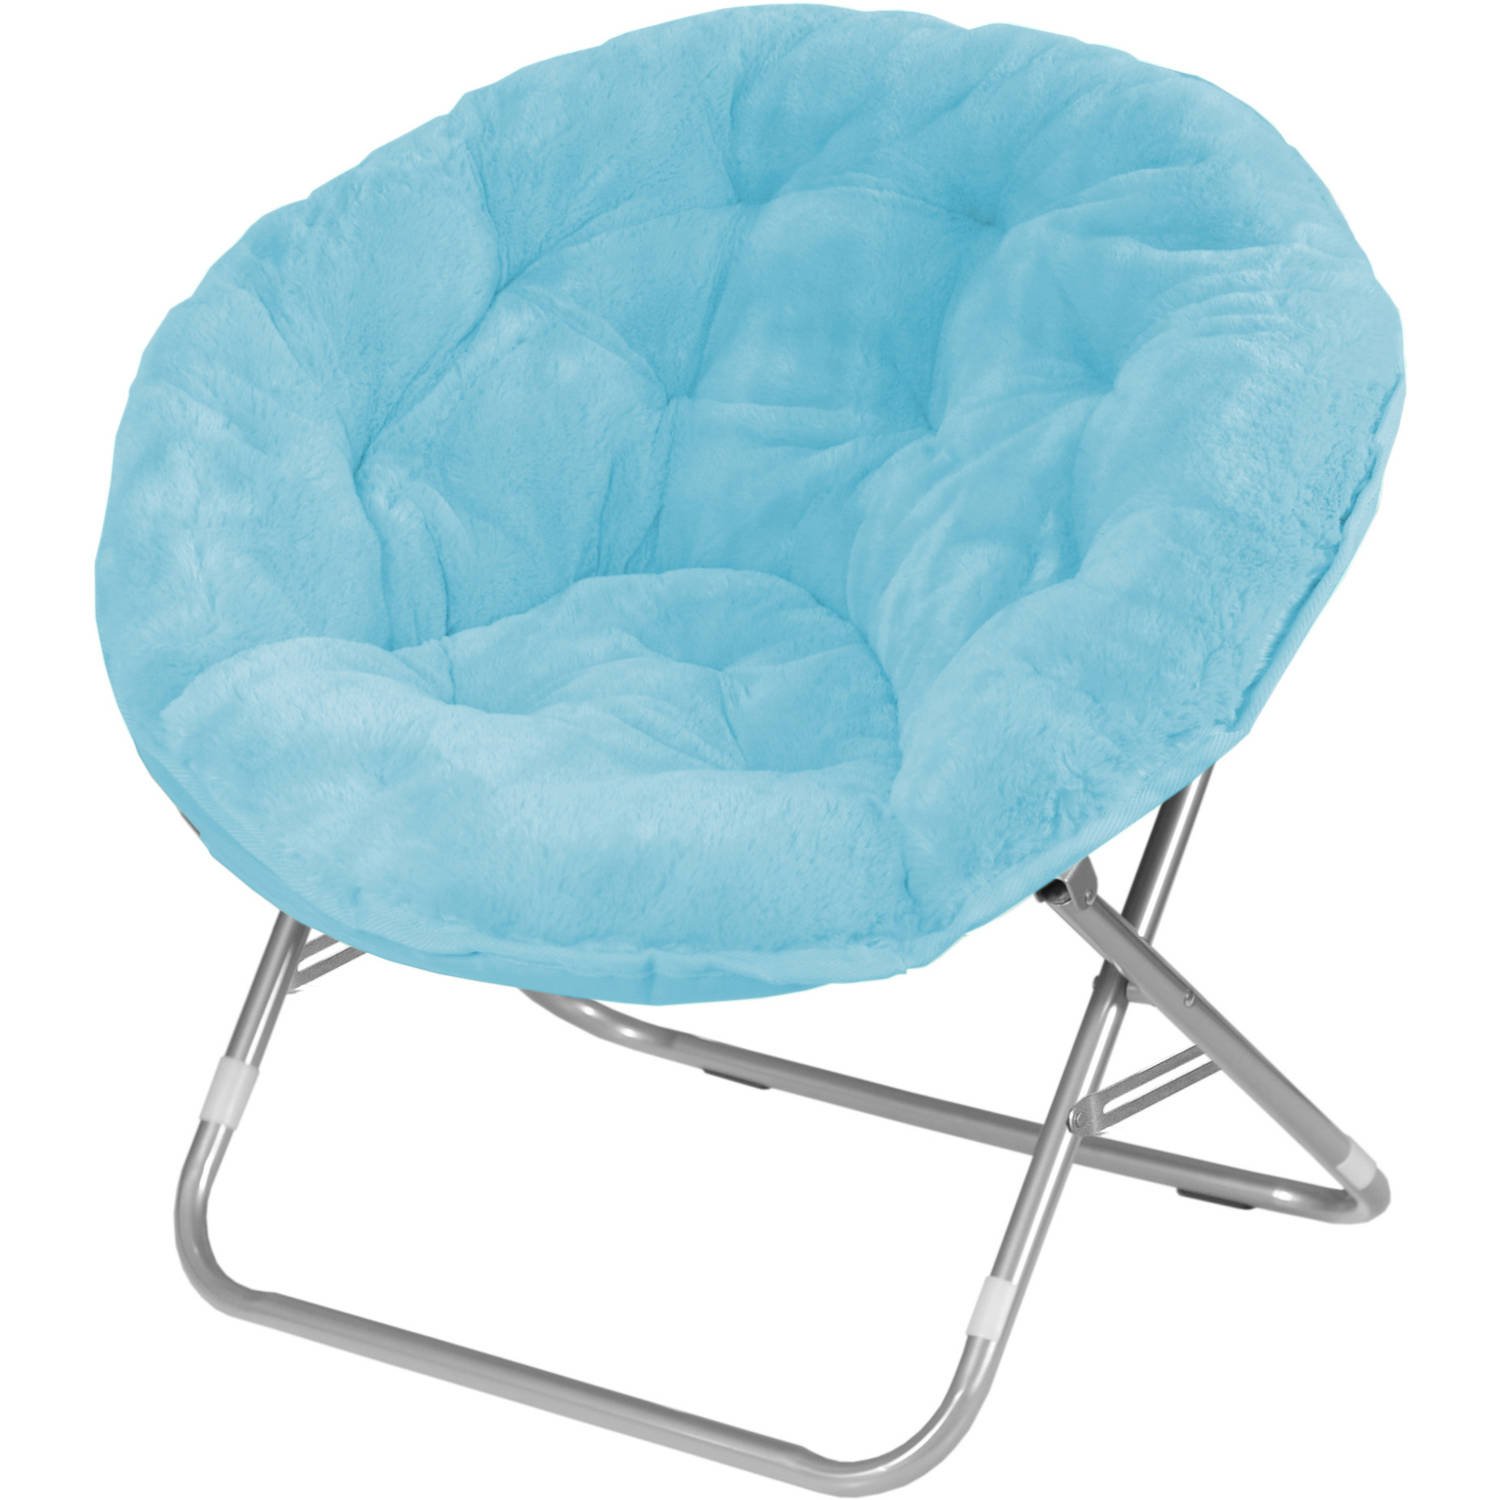 Mainstays Adult Faux Fur Saucer Chair, Aqua